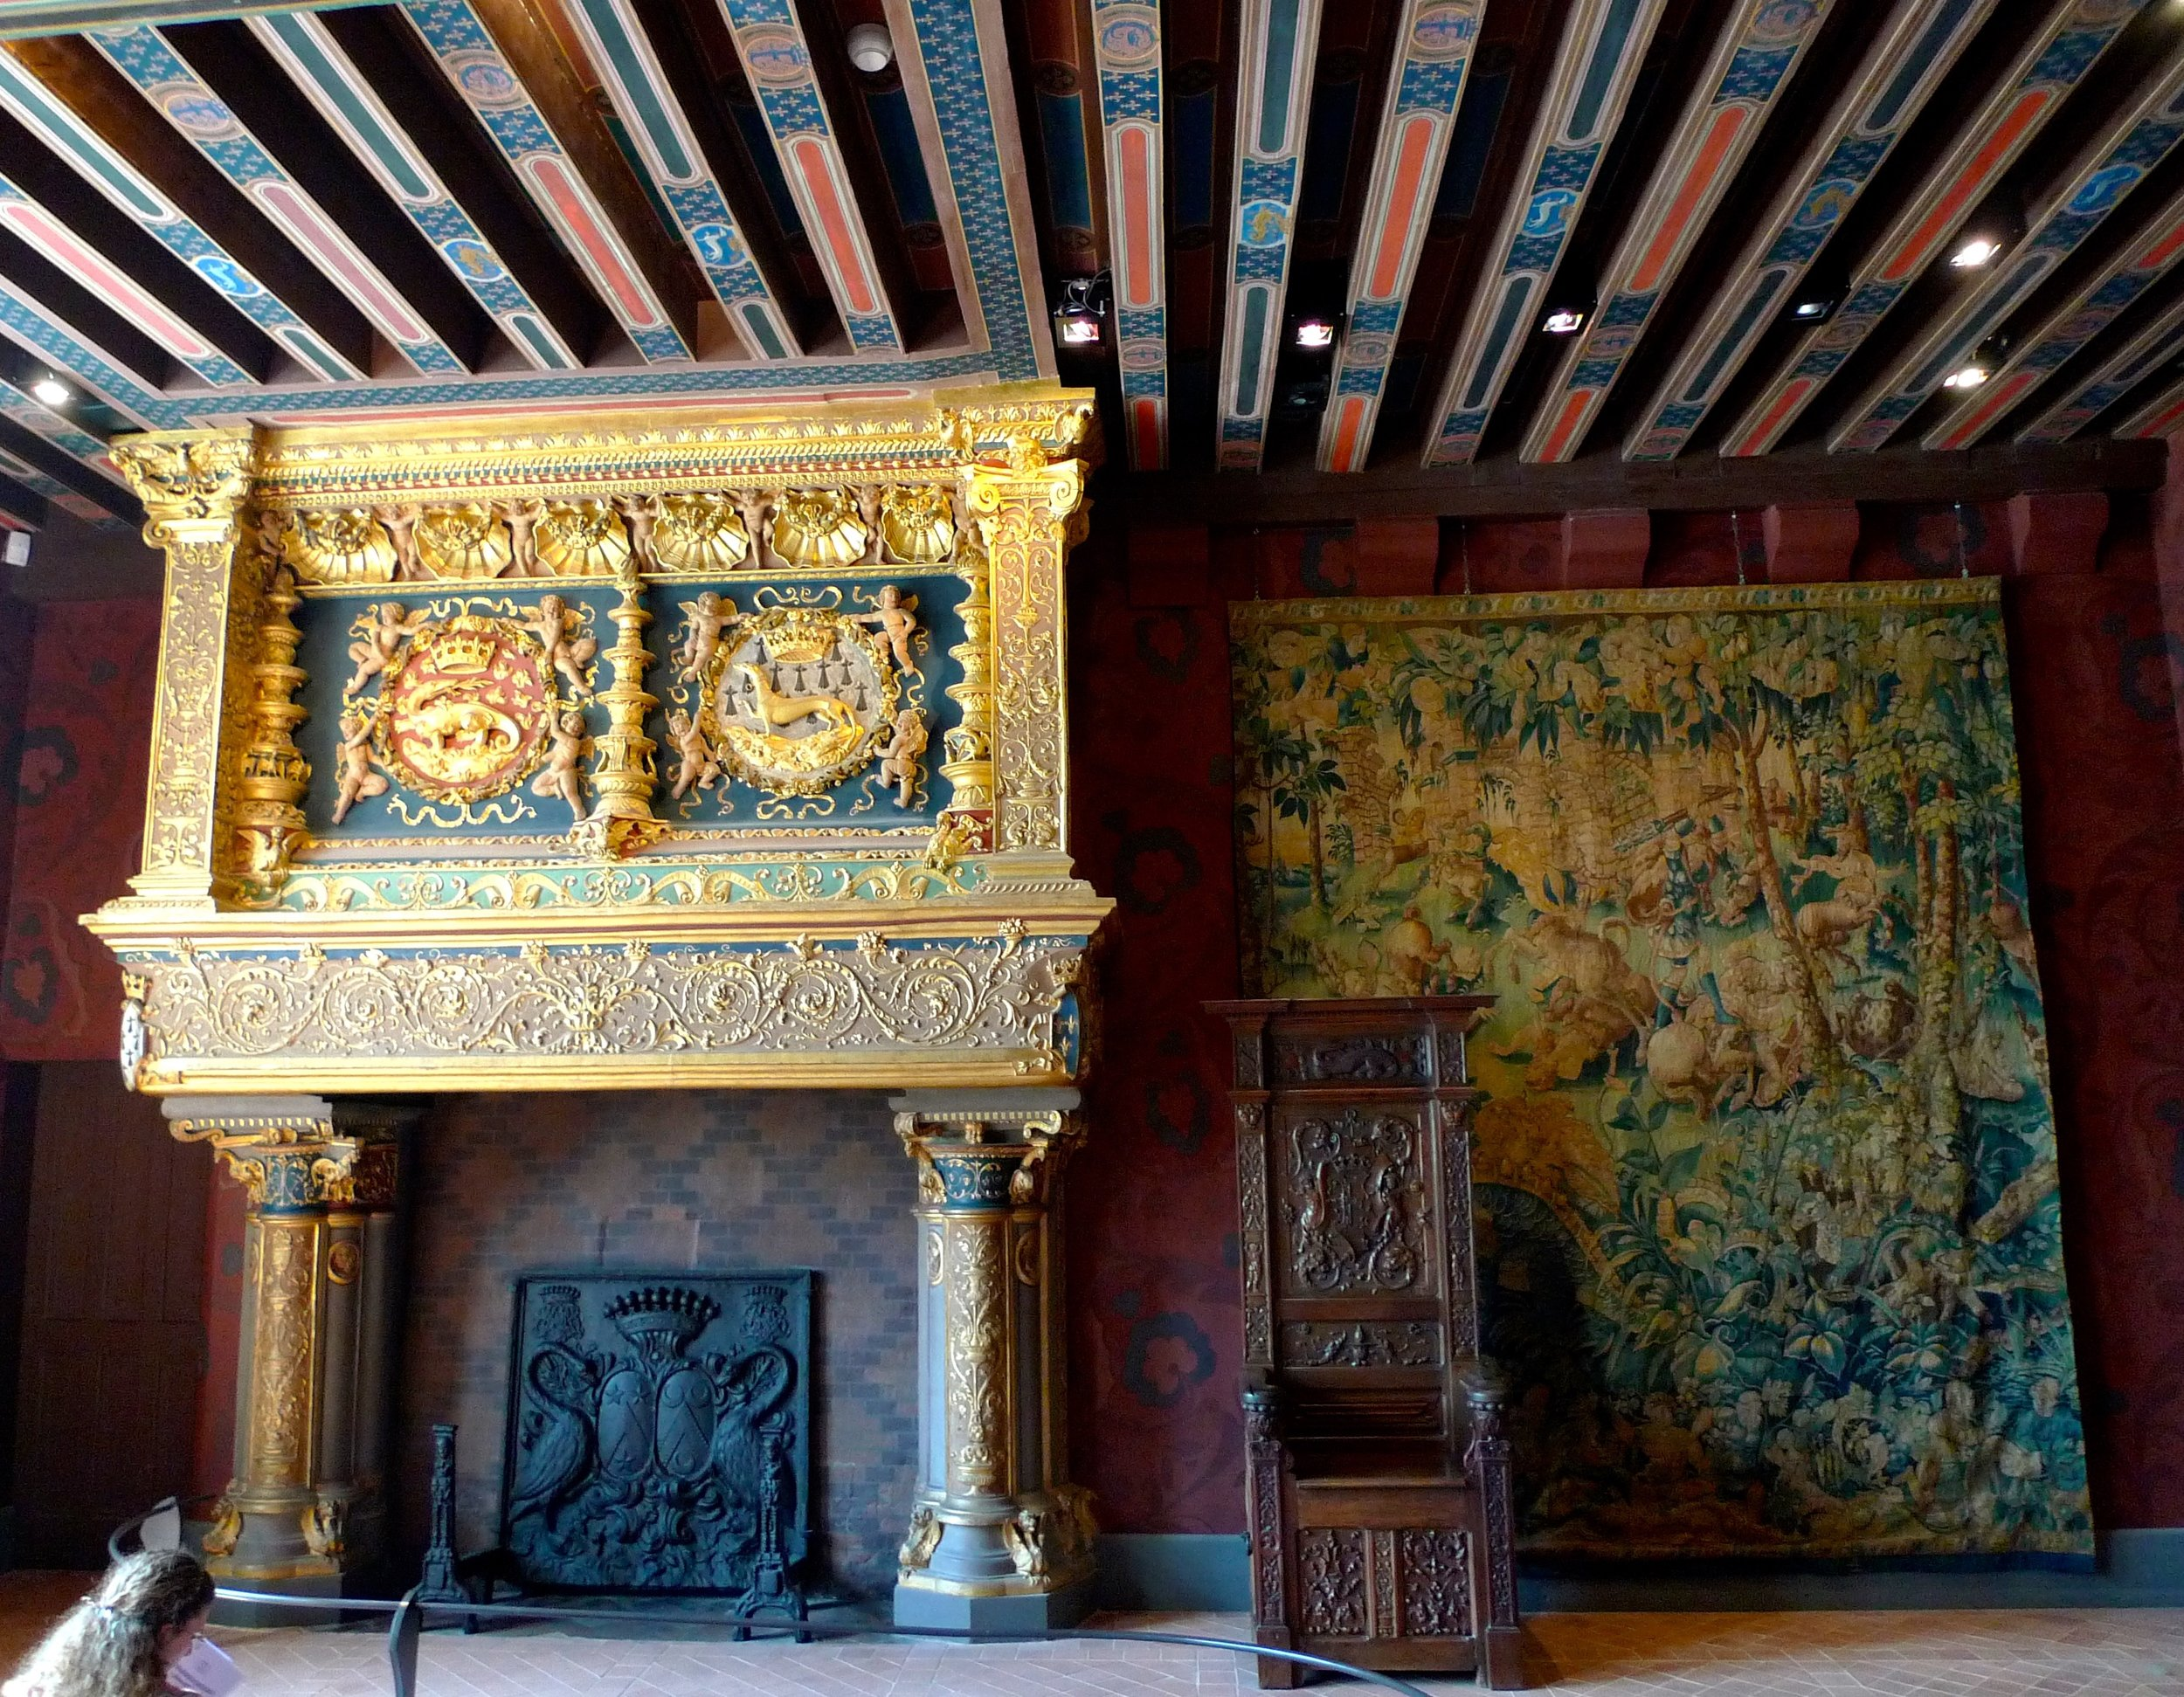 An ornate fireplace with a tapestry and a decorated ceiling